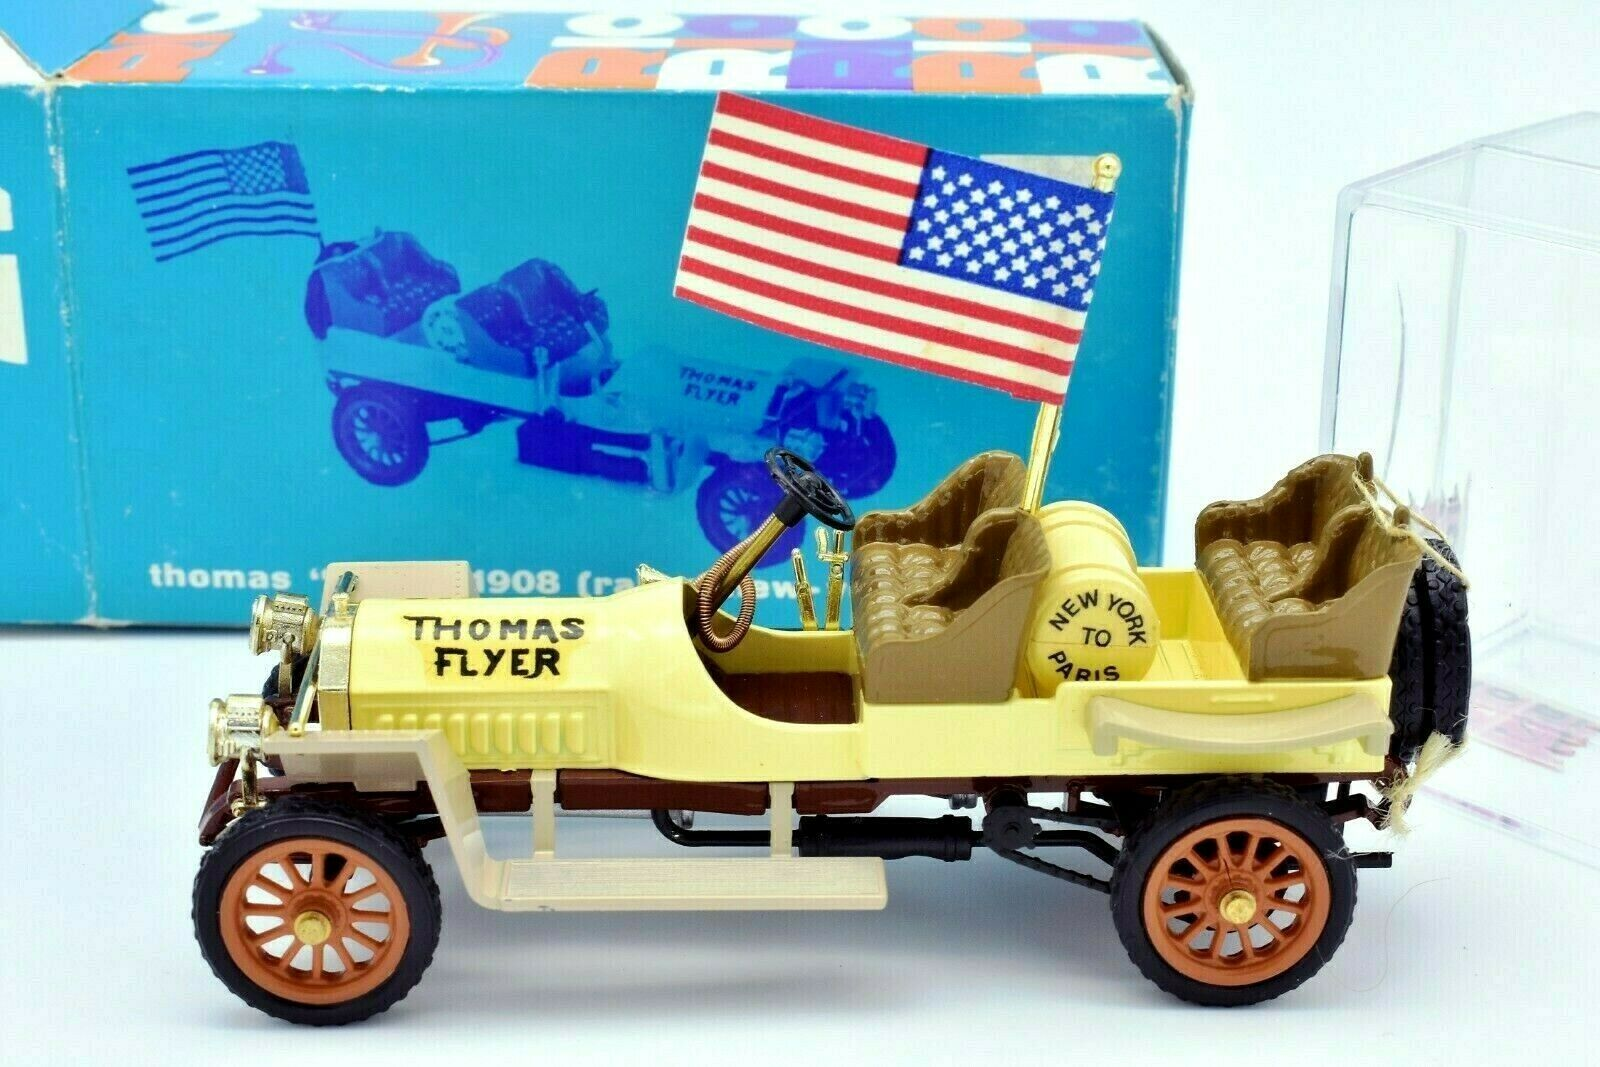 Model Car Thomas Flyer Rallye New York Paris 1 43 Diecast Car Model Rio 47